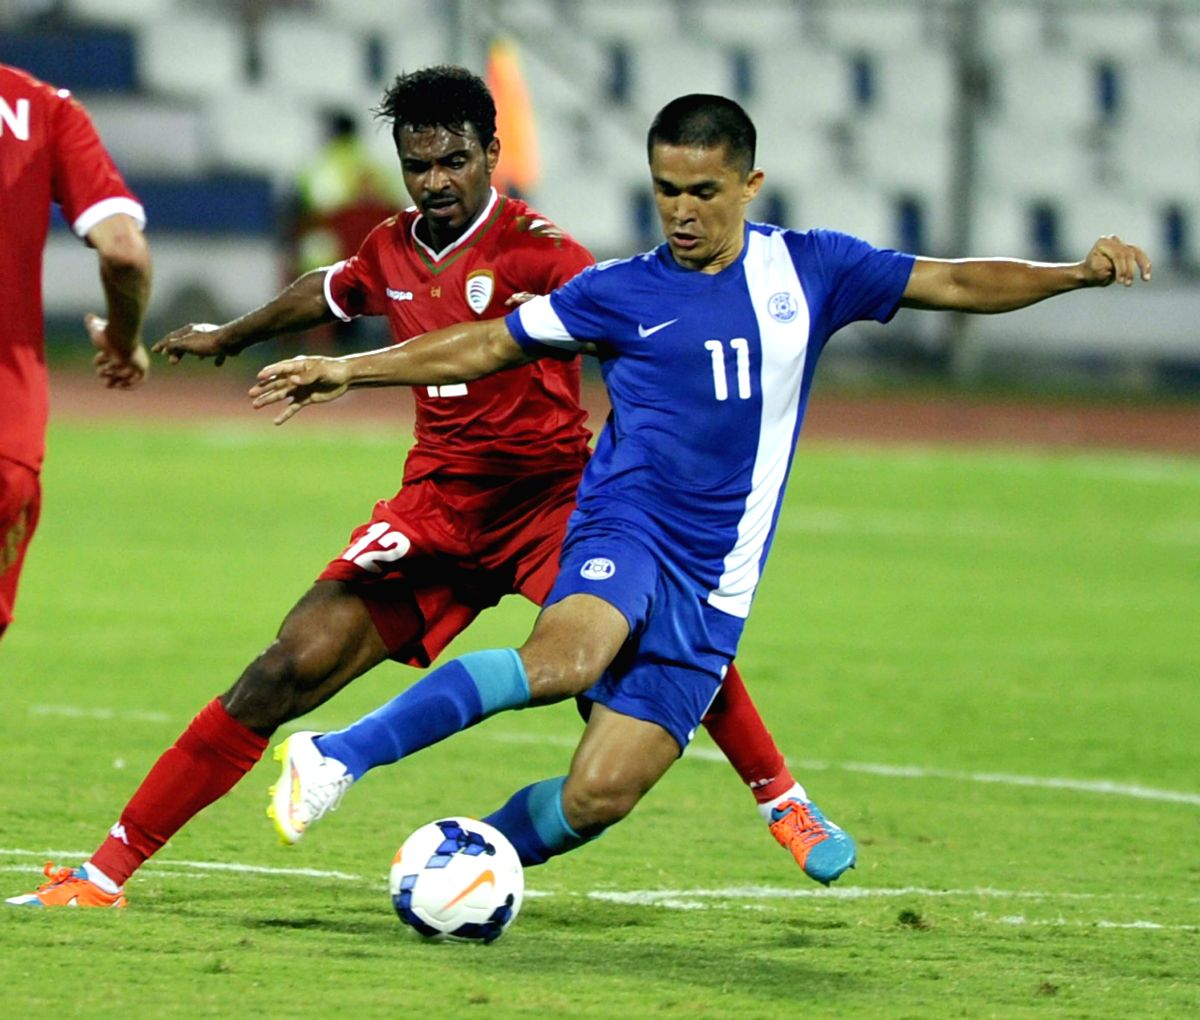 Bengaluru: Indian footballer Sunil Chetri in action during India vs Oman FIFA world cup 2018 qualifying match at Kanteerava Stadium, in Bengaluru on June 11, 2015. India lose 1-2.